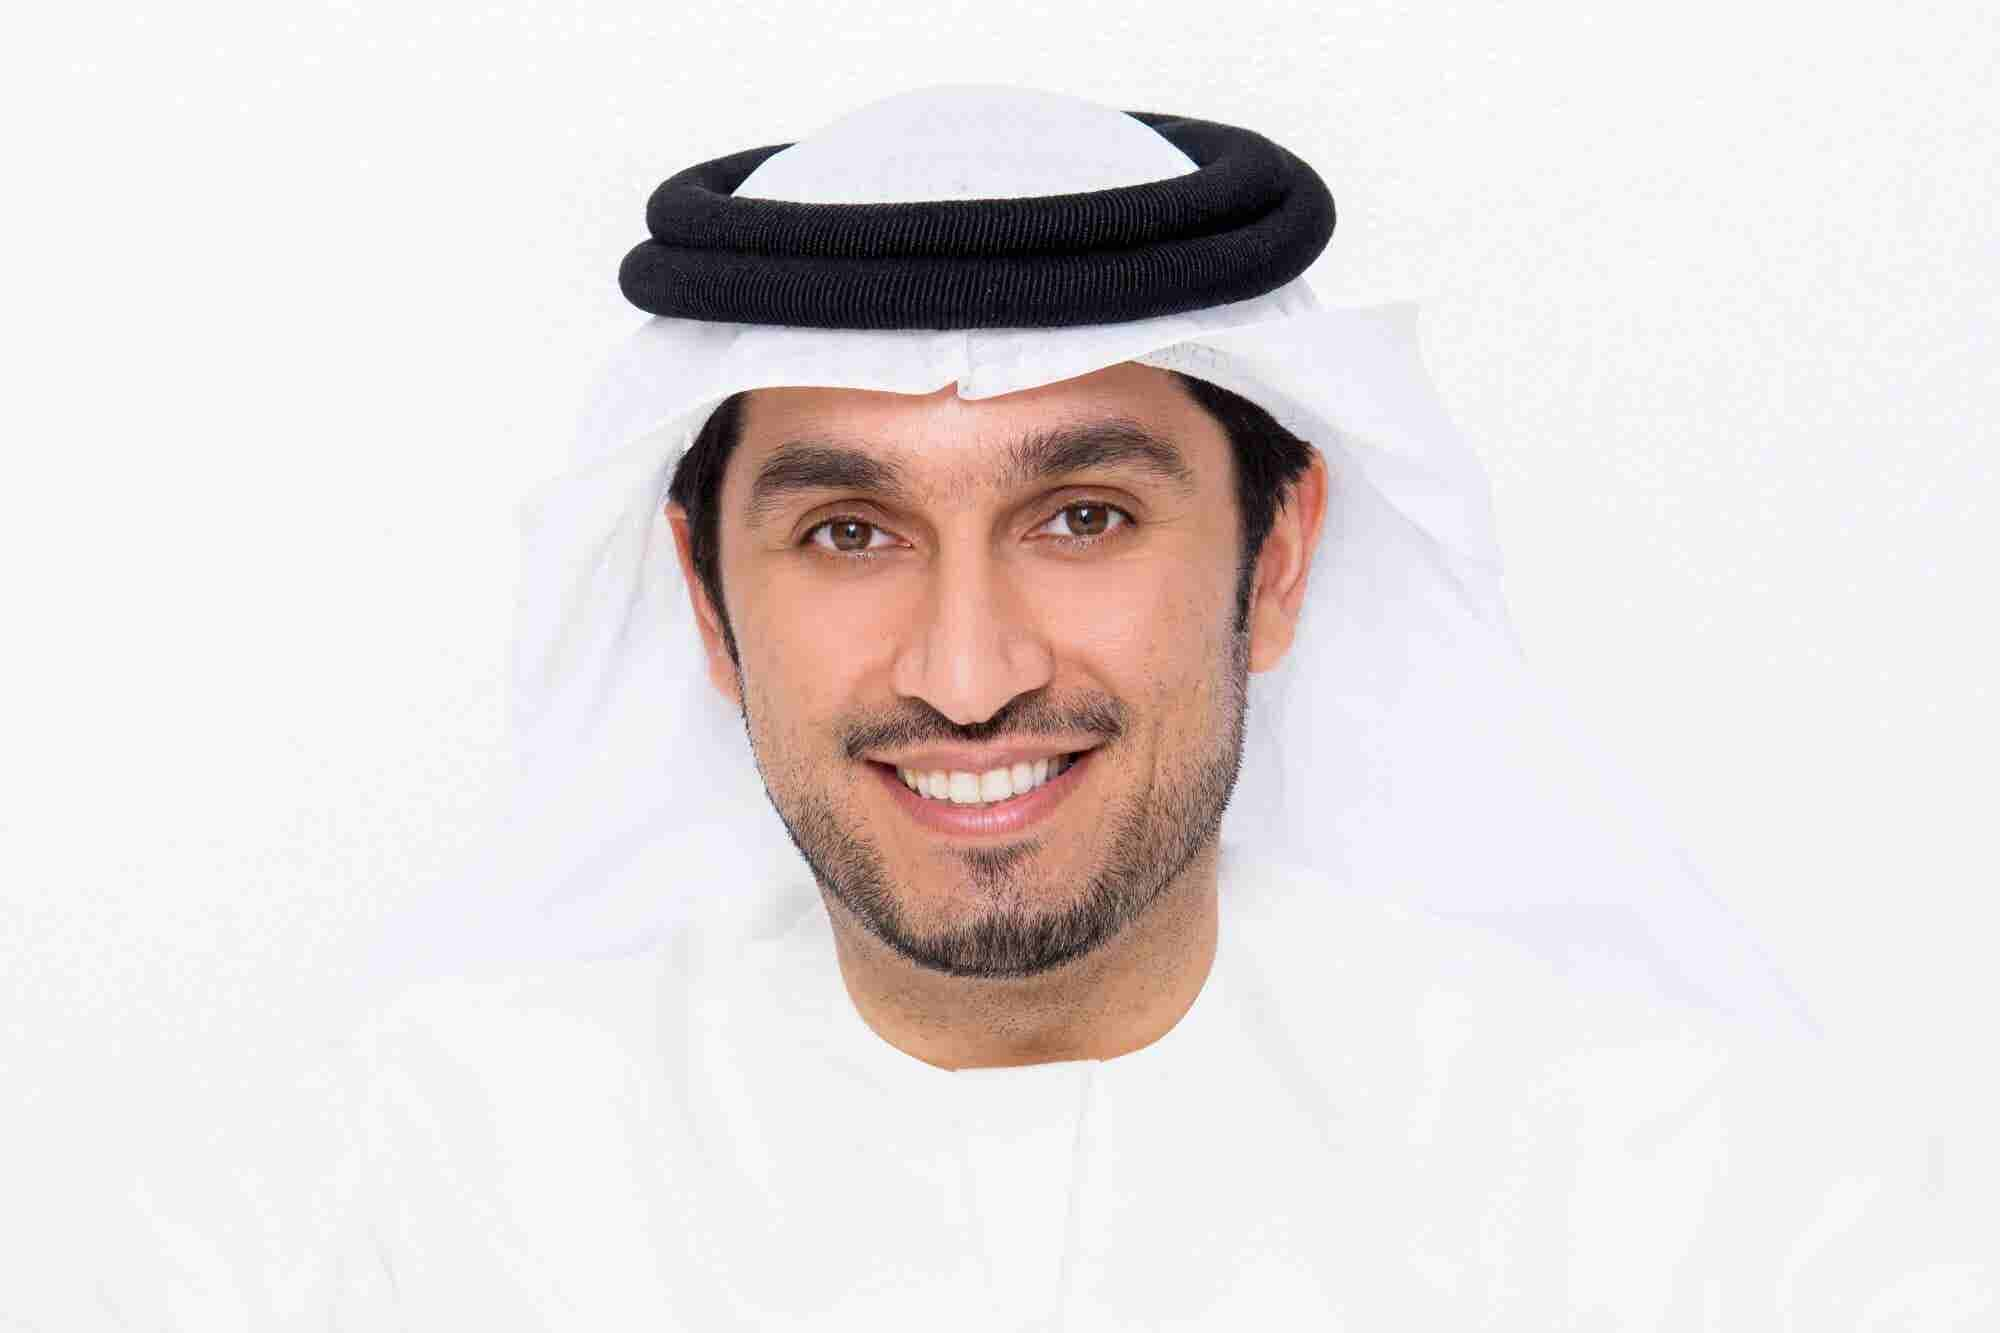 Follow The Leader: Mohammad Saeed Al-Shehhi, CEO, Dubai Design District (d3)